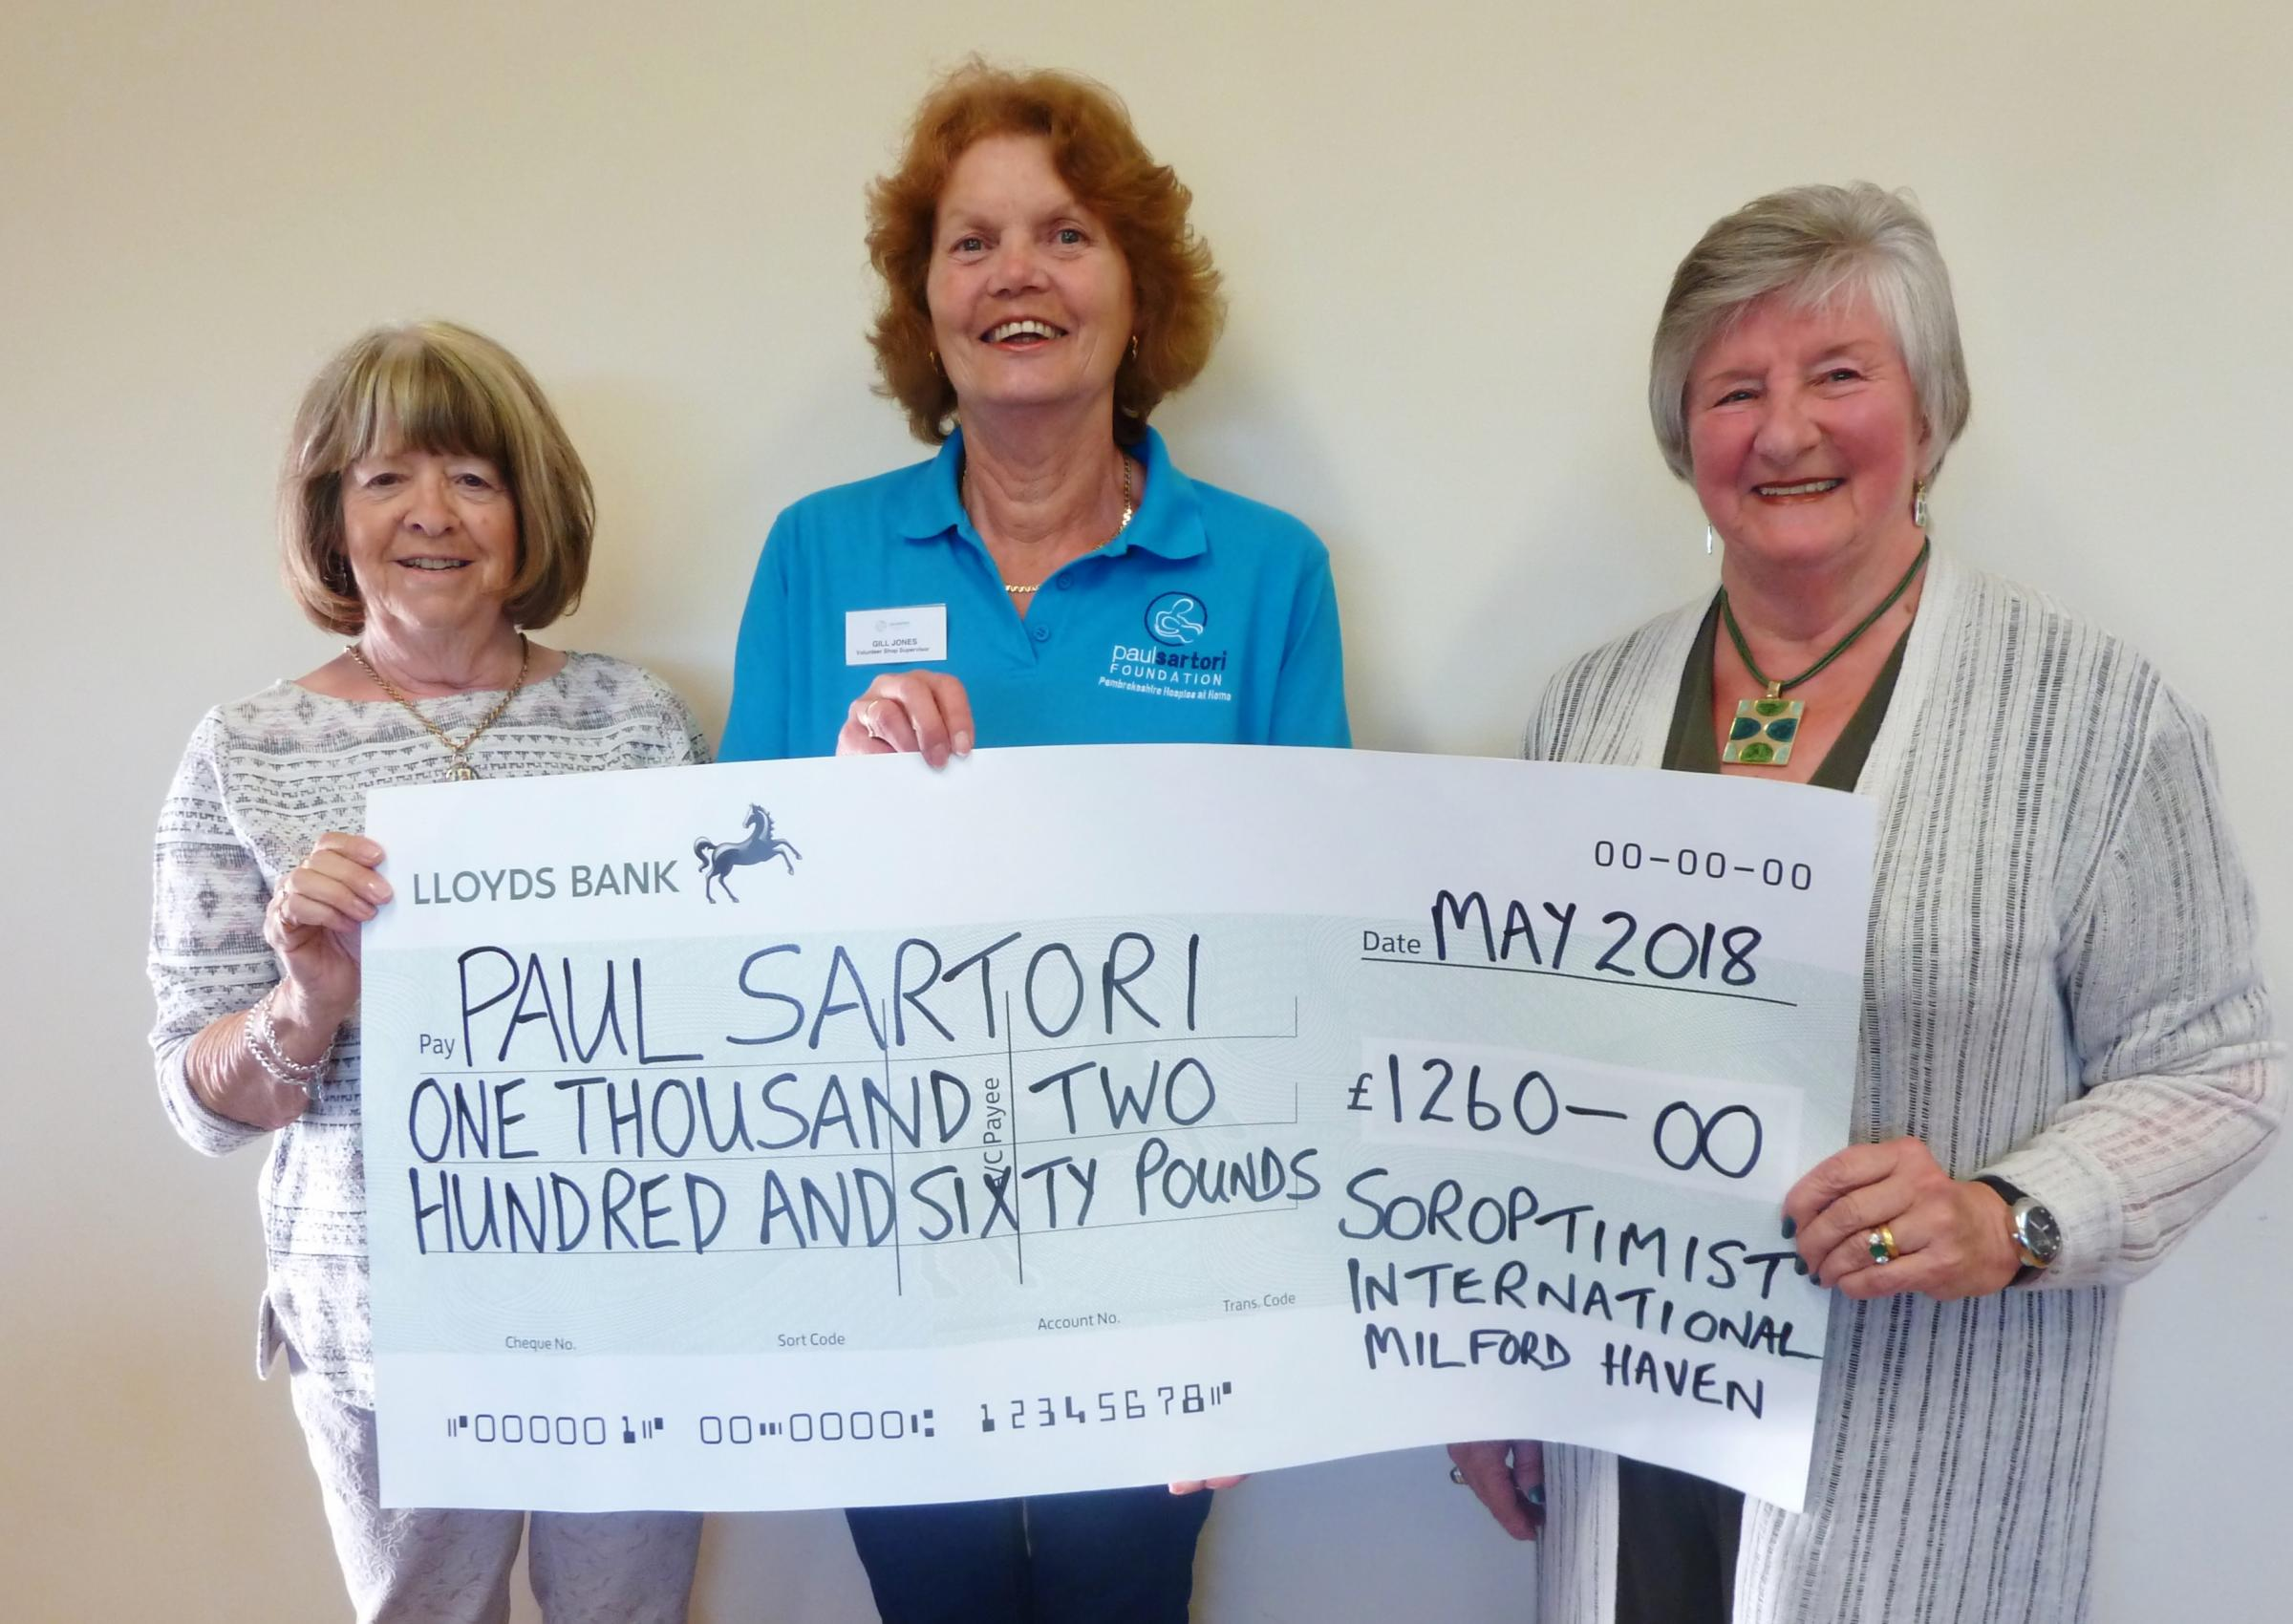 Soroptimists International Milford Haven presented a cheque to Paul Sartori.